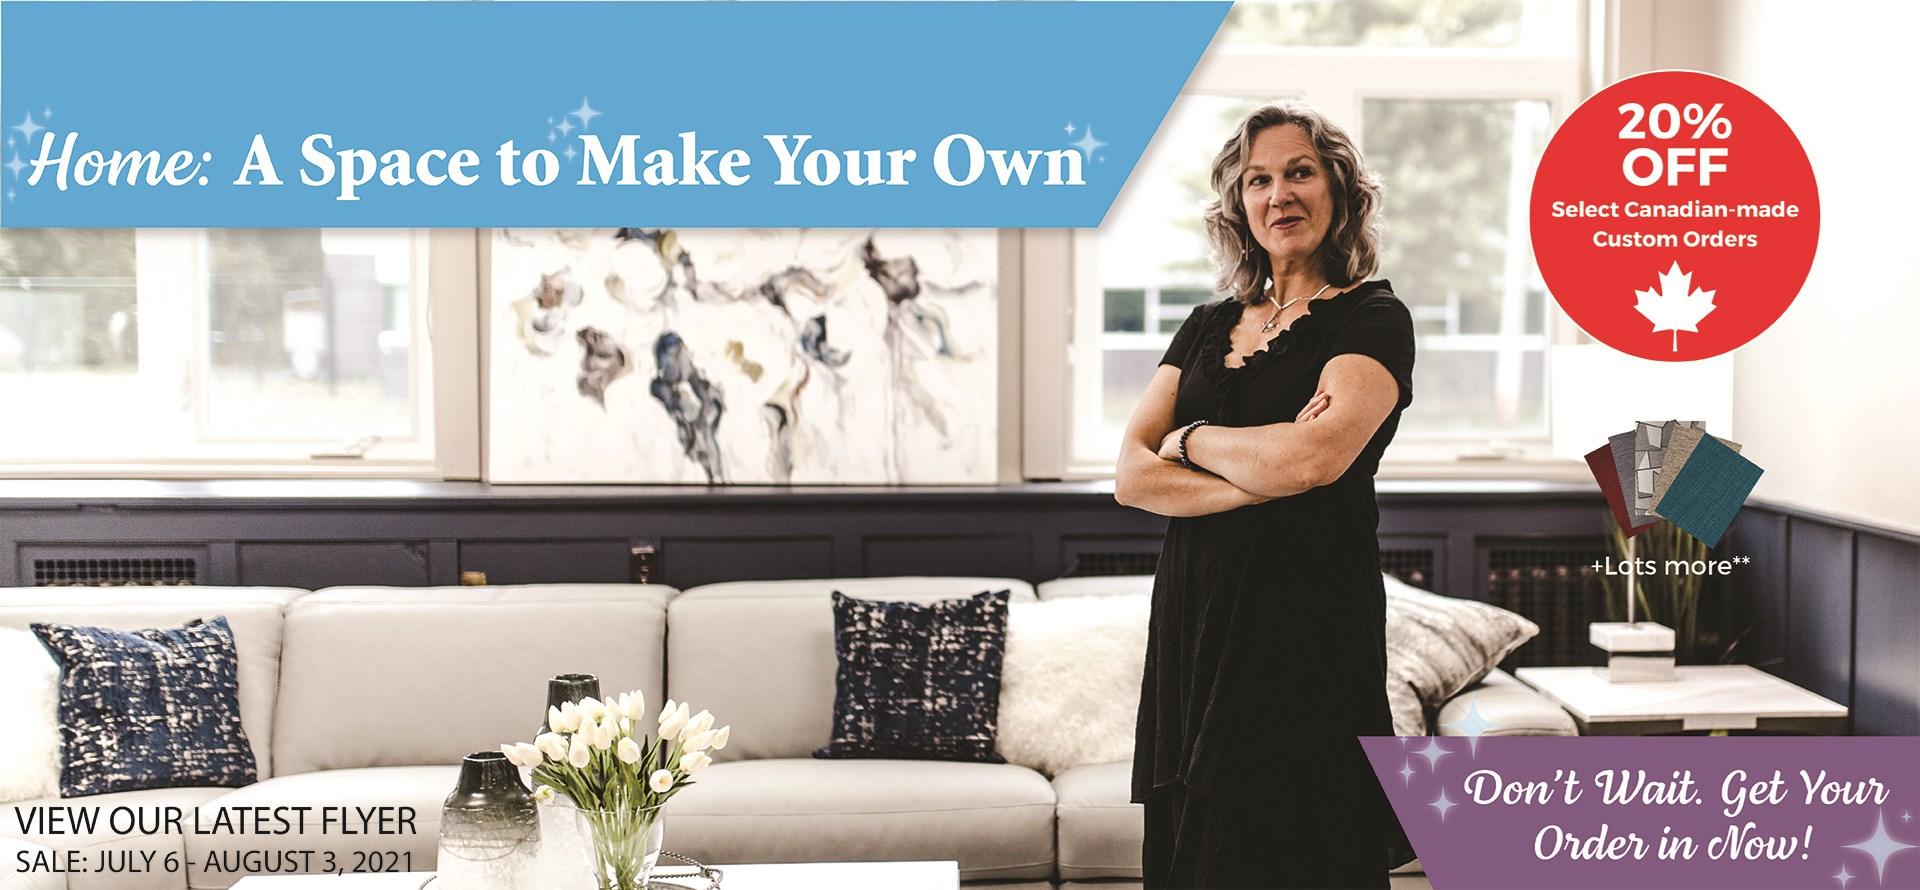 Home: A Space to Make Your Own